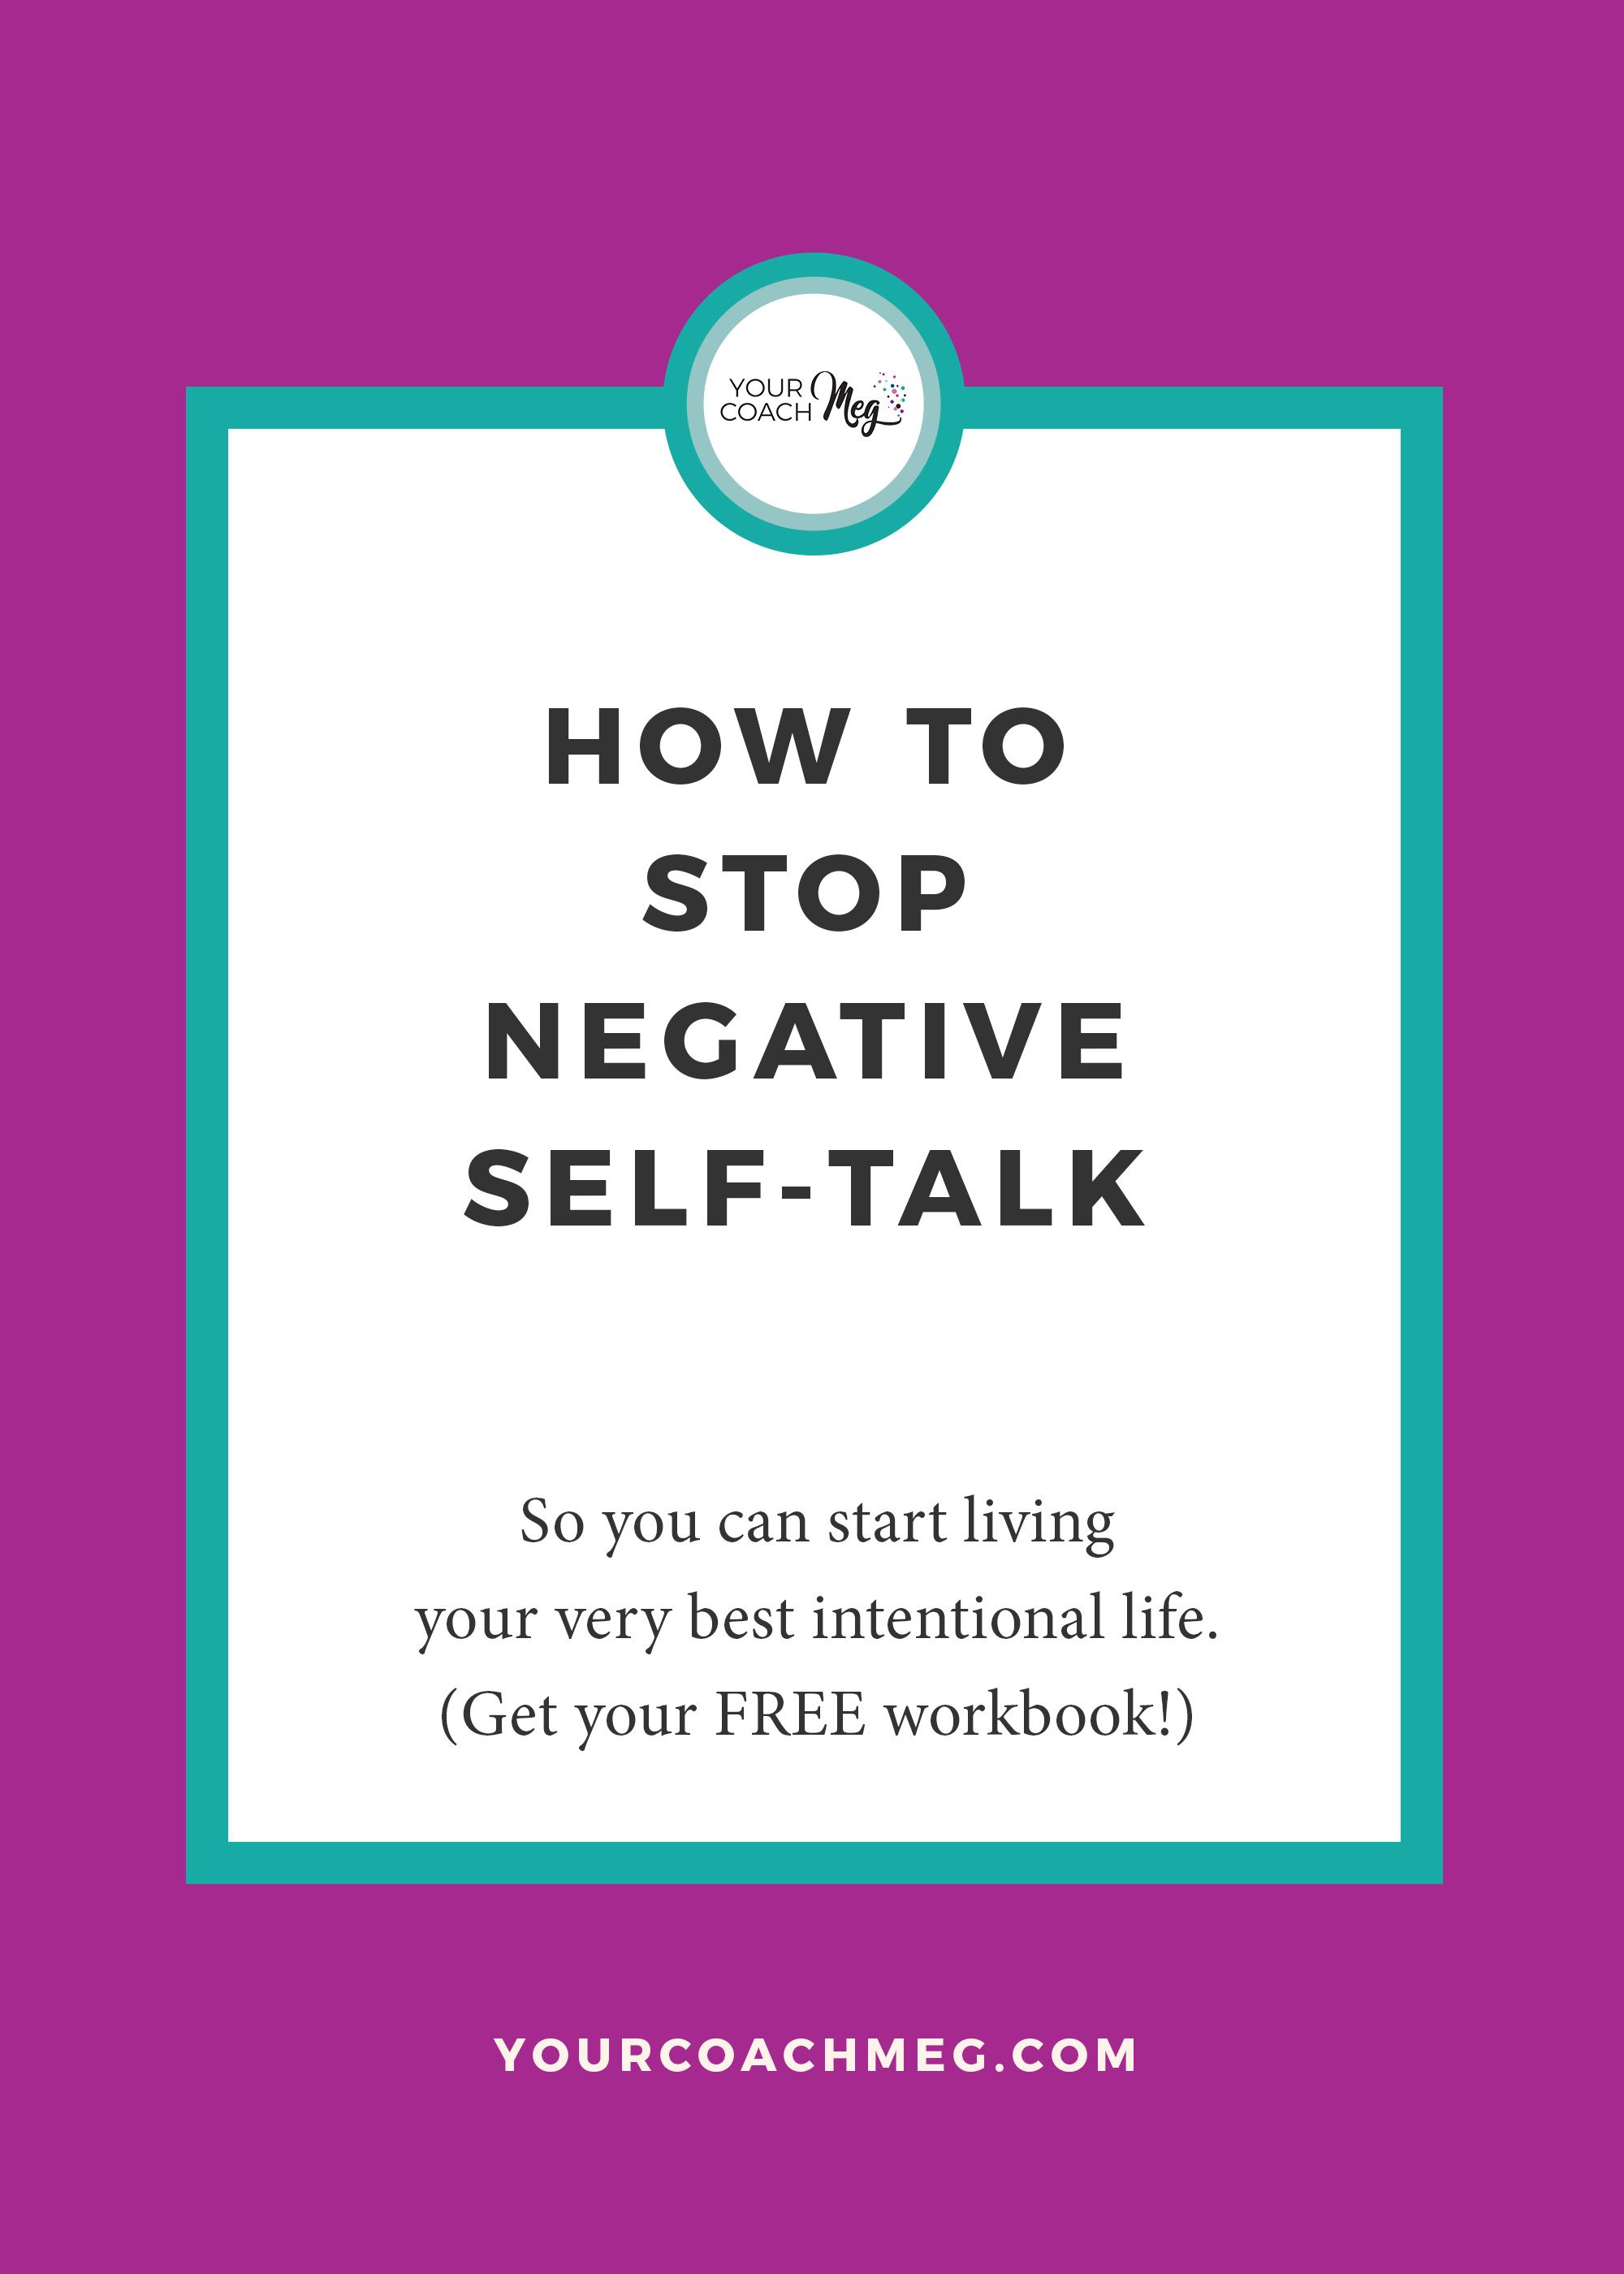 HOW TO STOP NEGATIVE SELFTALK (with a FREE workbook